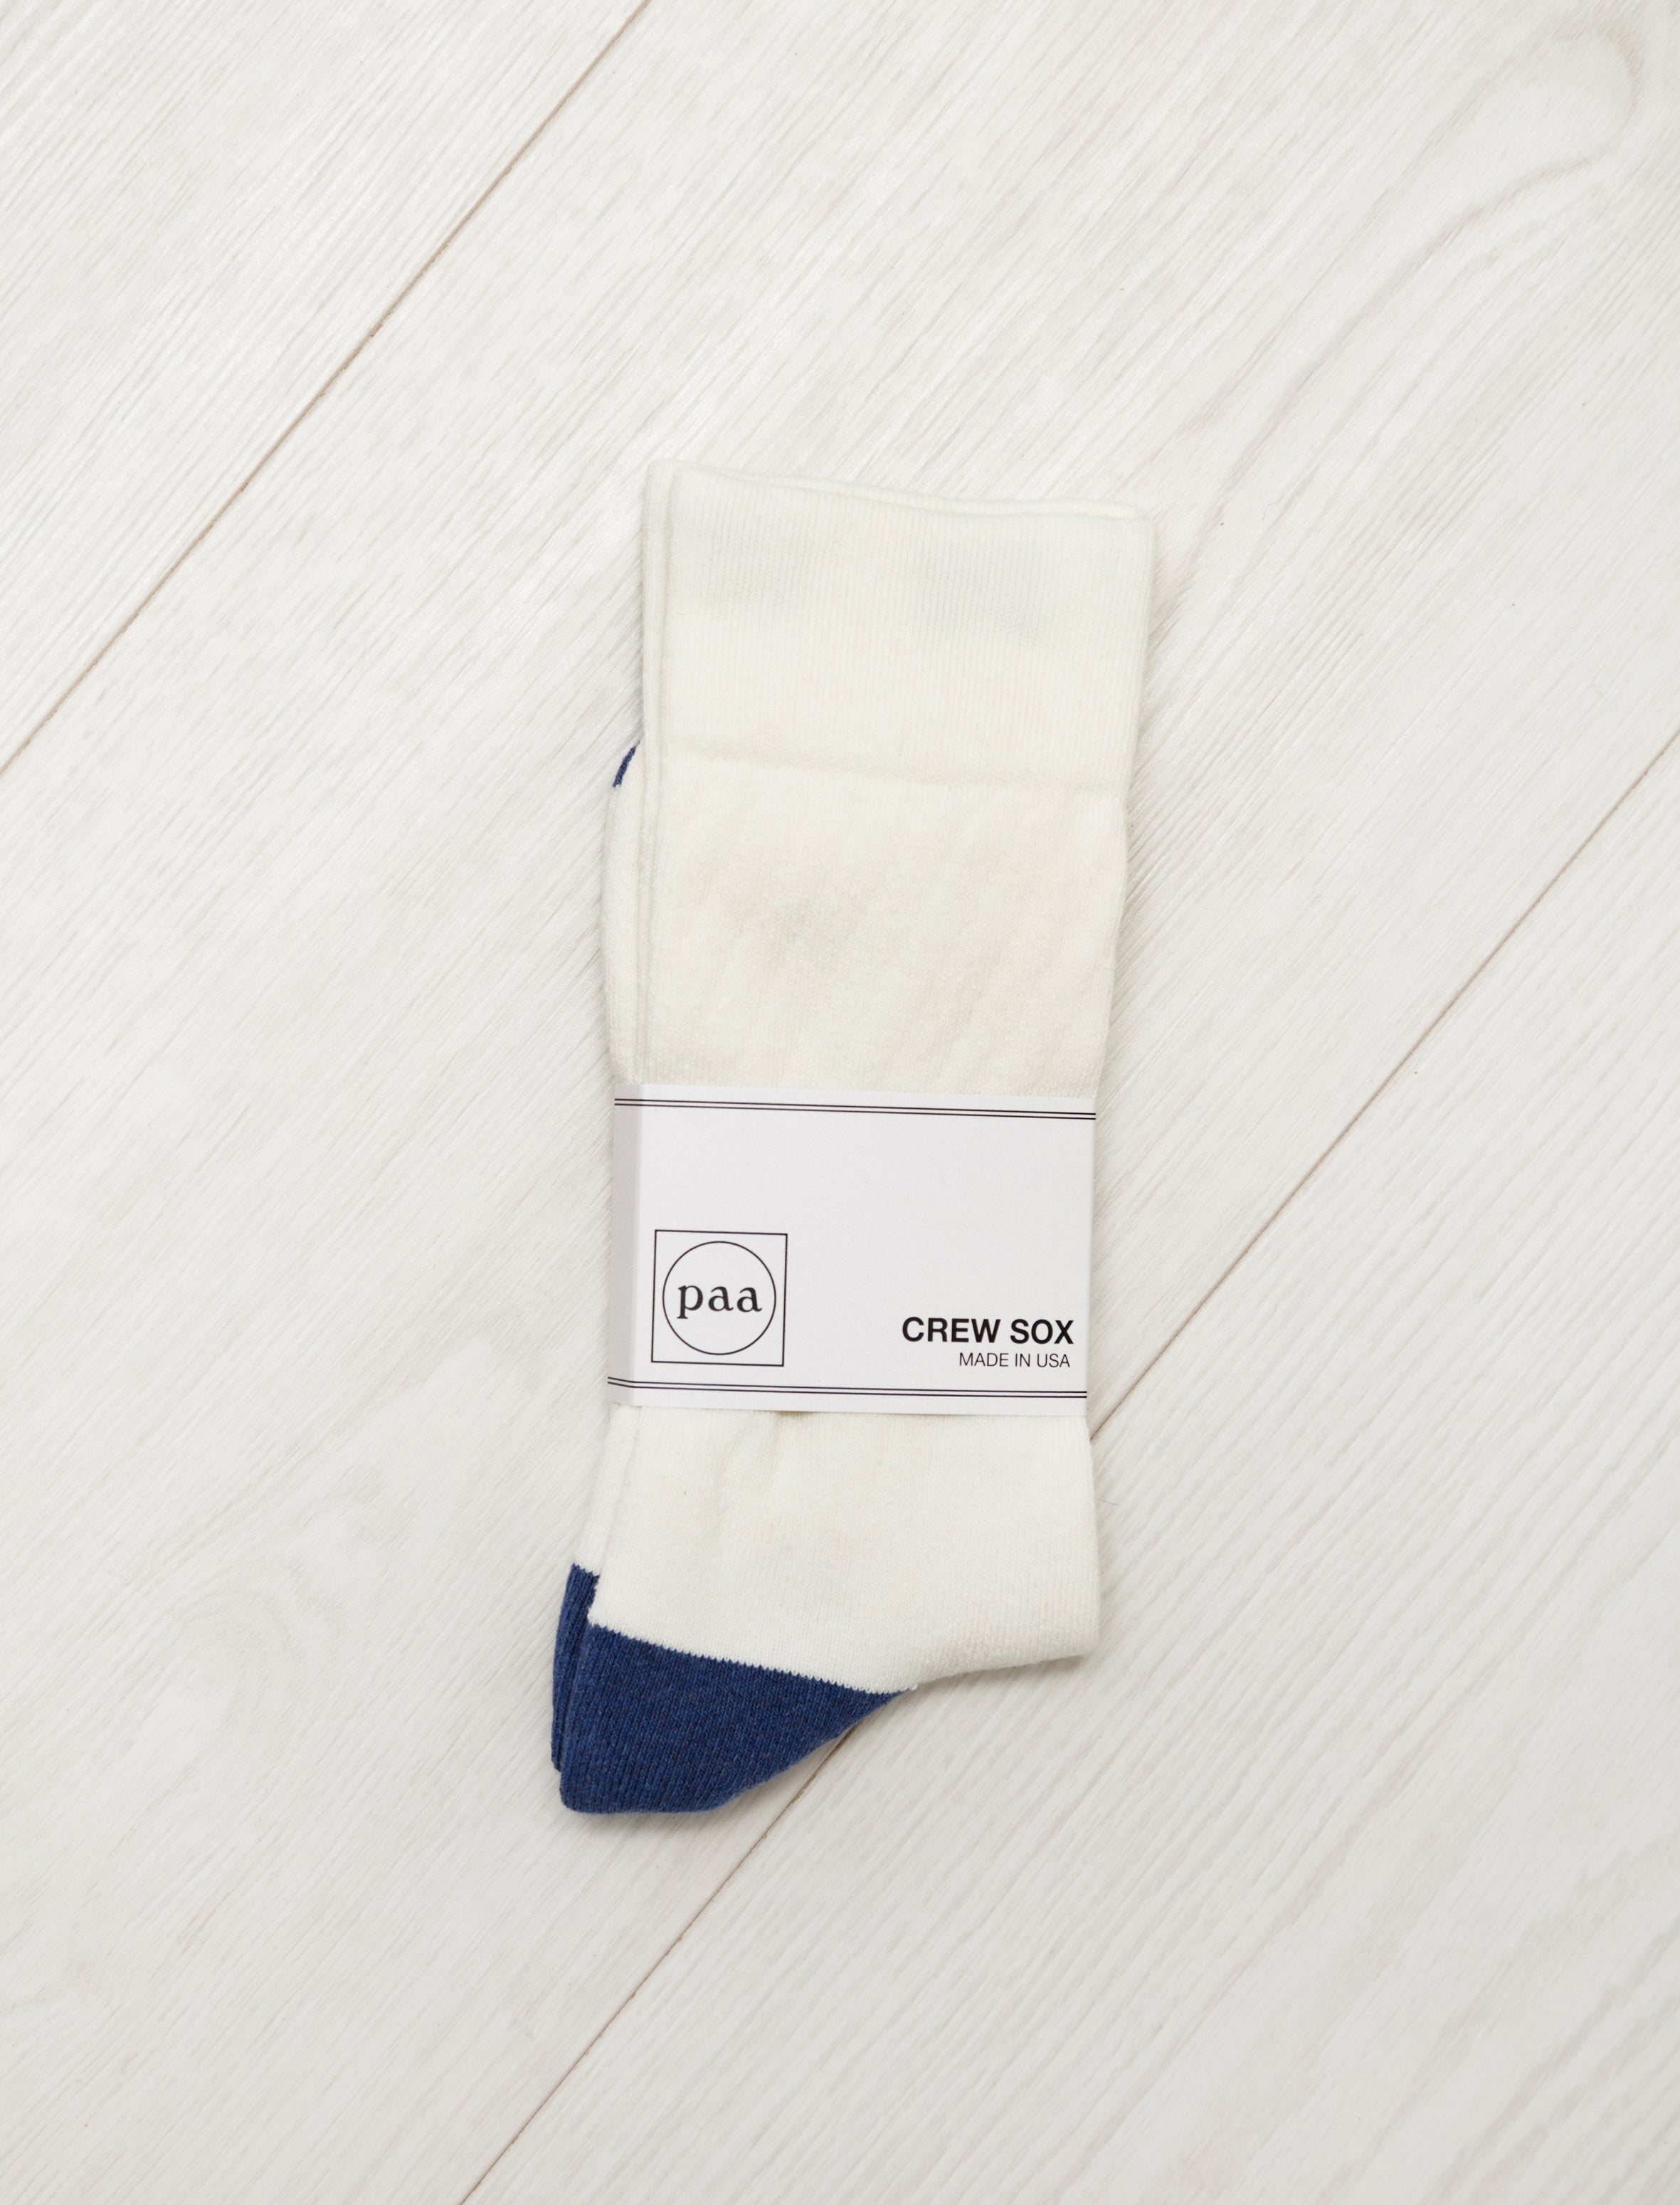 Paa Recycled Crew Sox 2.5